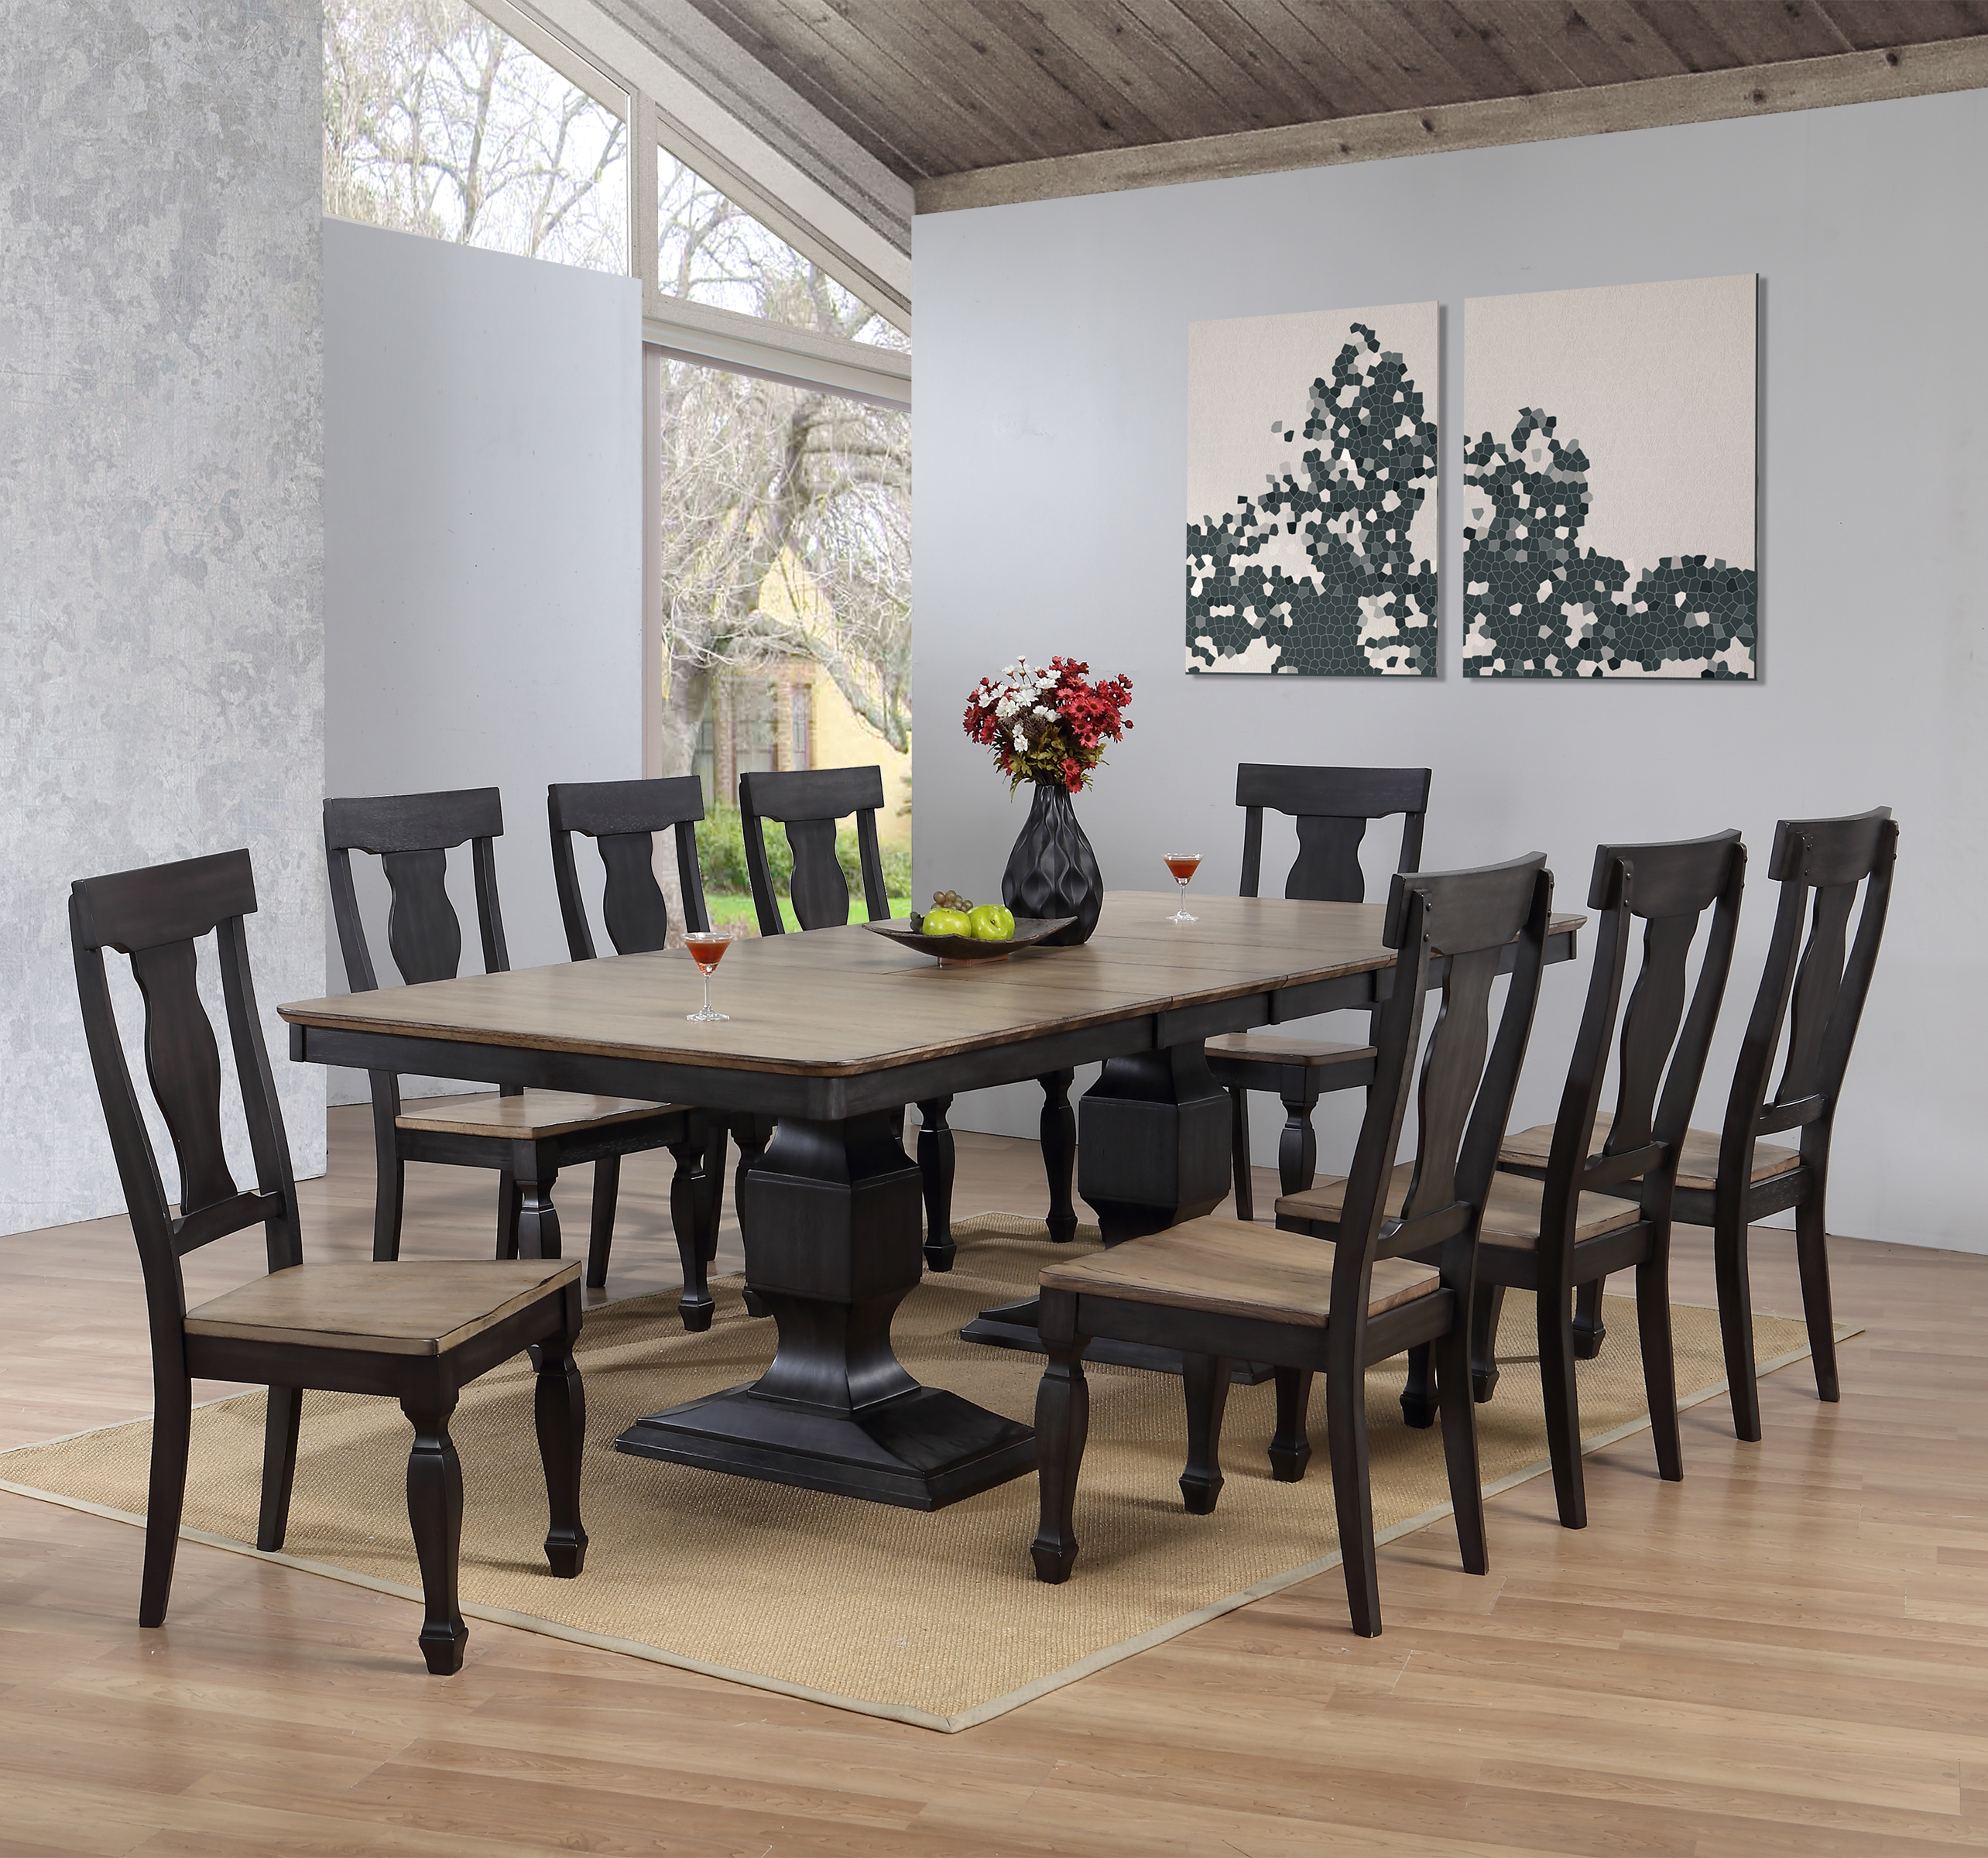 Nysha 10 Piece Charcoal & Oak Wood Transitional Rectangle Formal Dining Room Table & 8 Scooped Fiddleback Chairs With Buffet Server Set... by Pilaster Designs